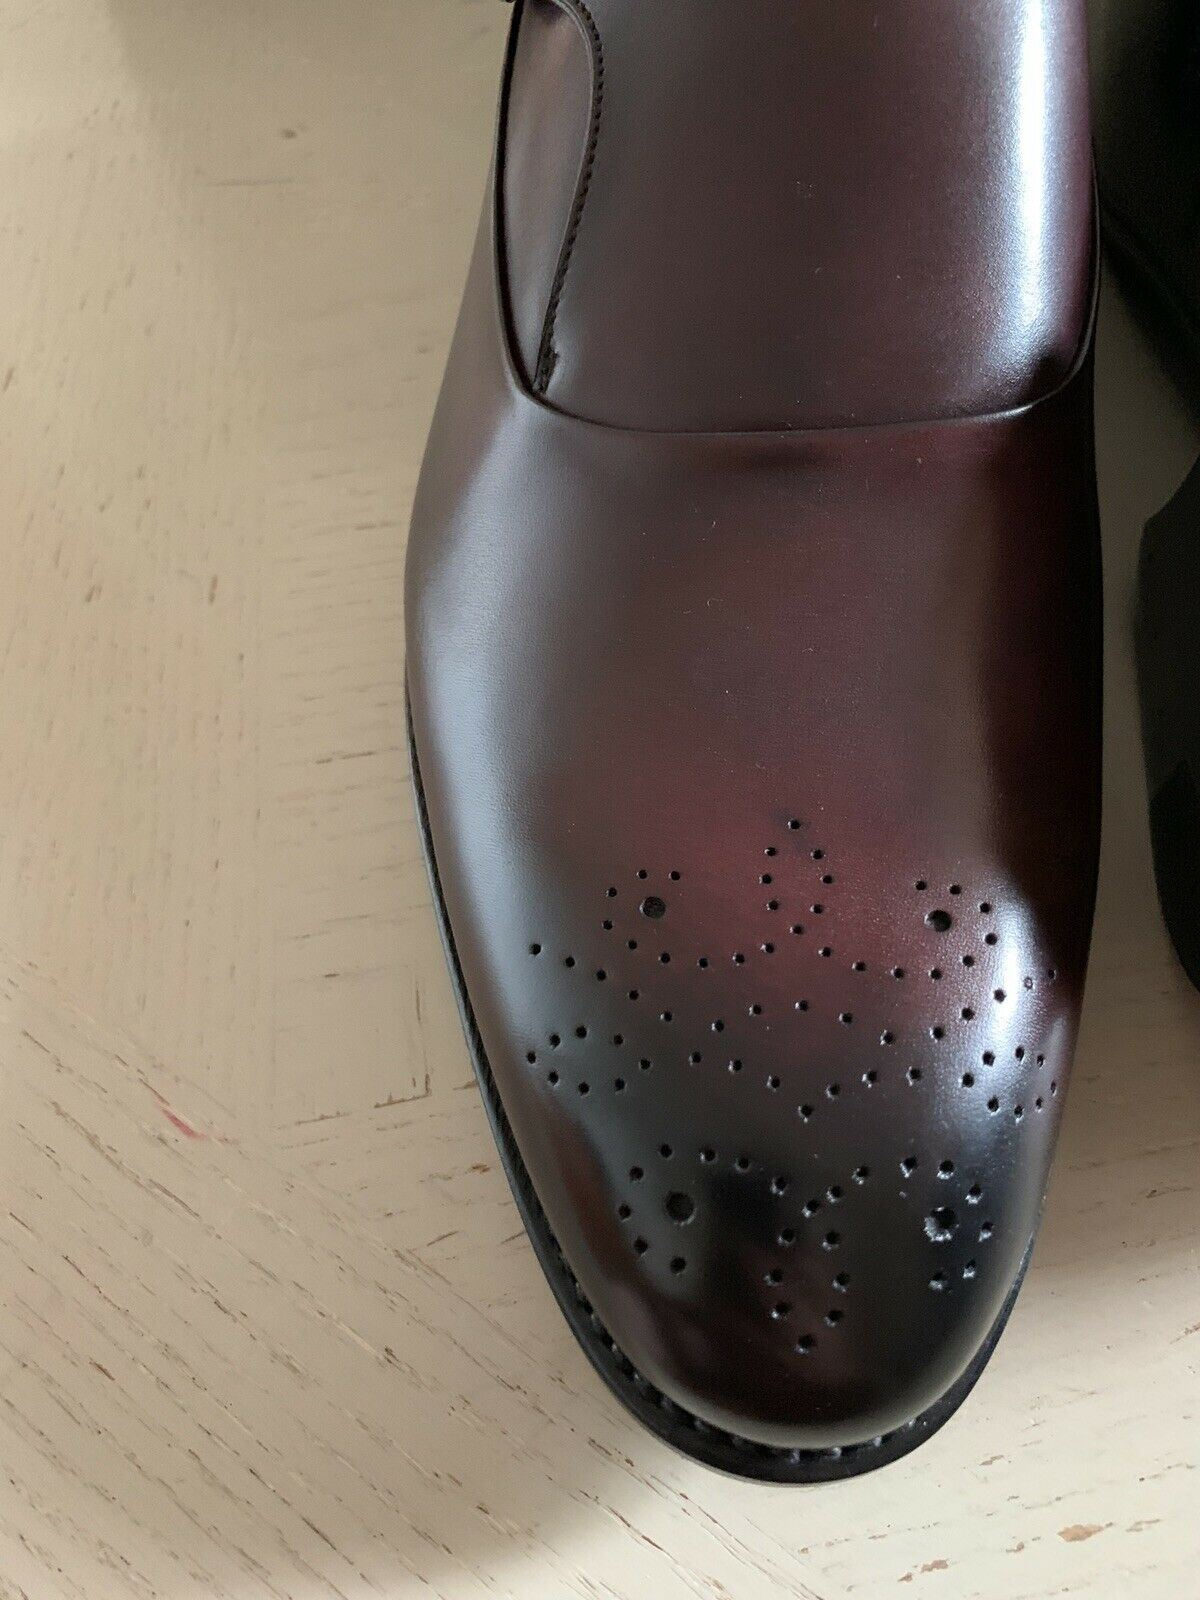 New $1350 Ermenegildo Zegna Couture Monk Brogues Leather Shoes Burgundy 12 US